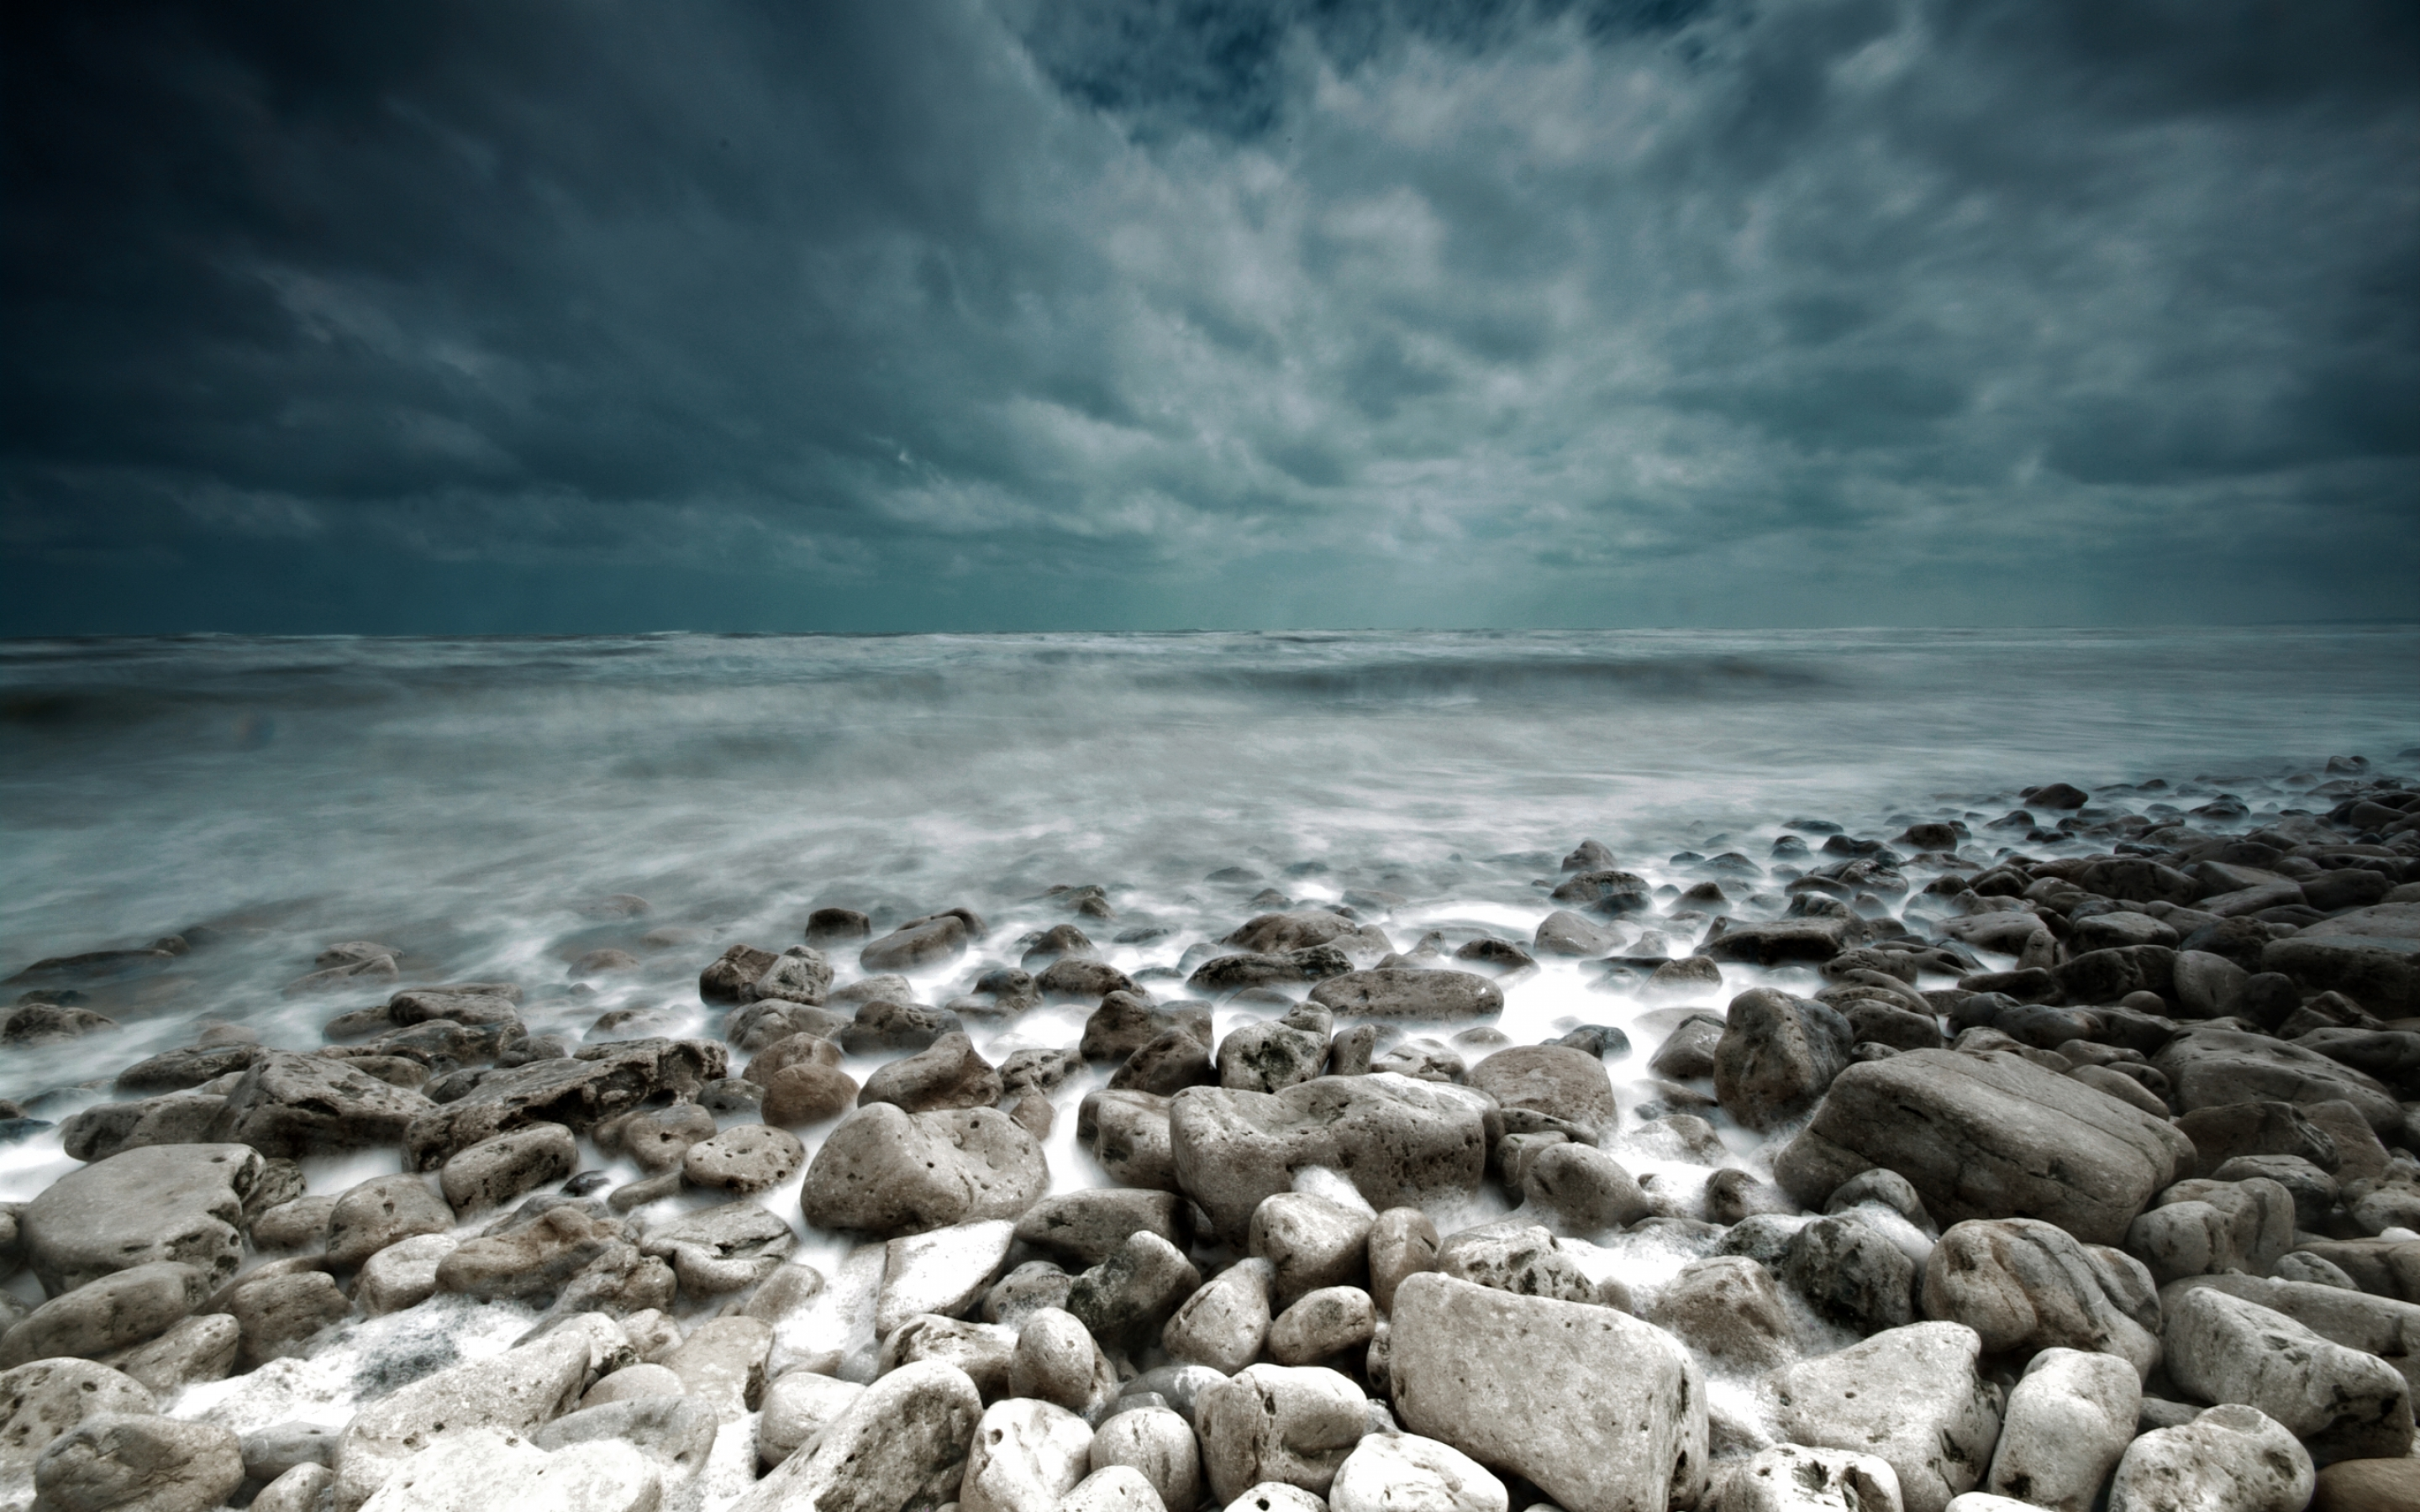 Sea and Stones wallpaper | 2880x1800 | 5032 | WallpaperUP